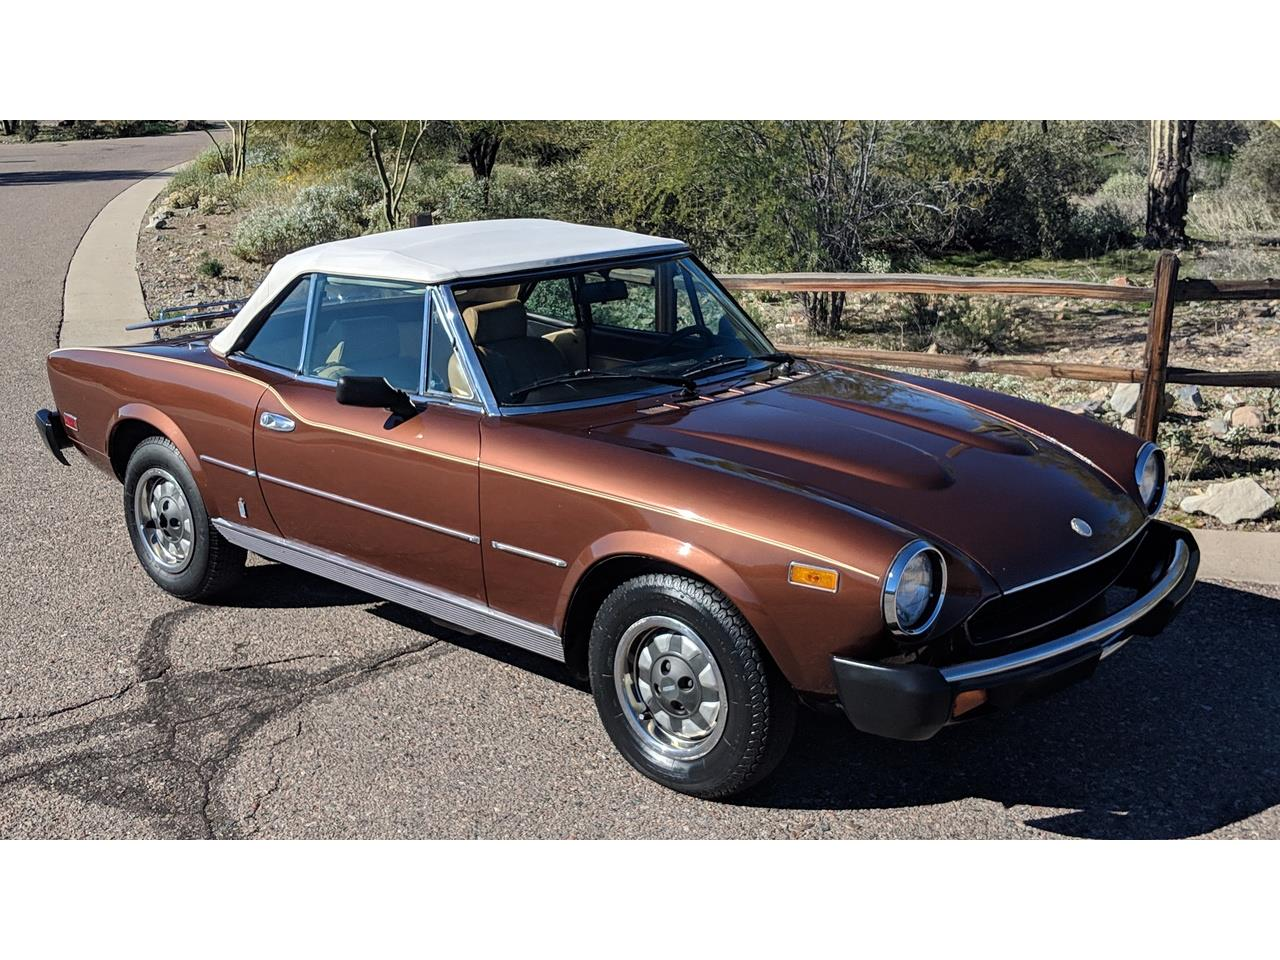 1979 fiat spider for sale | classiccars | cc-1175110